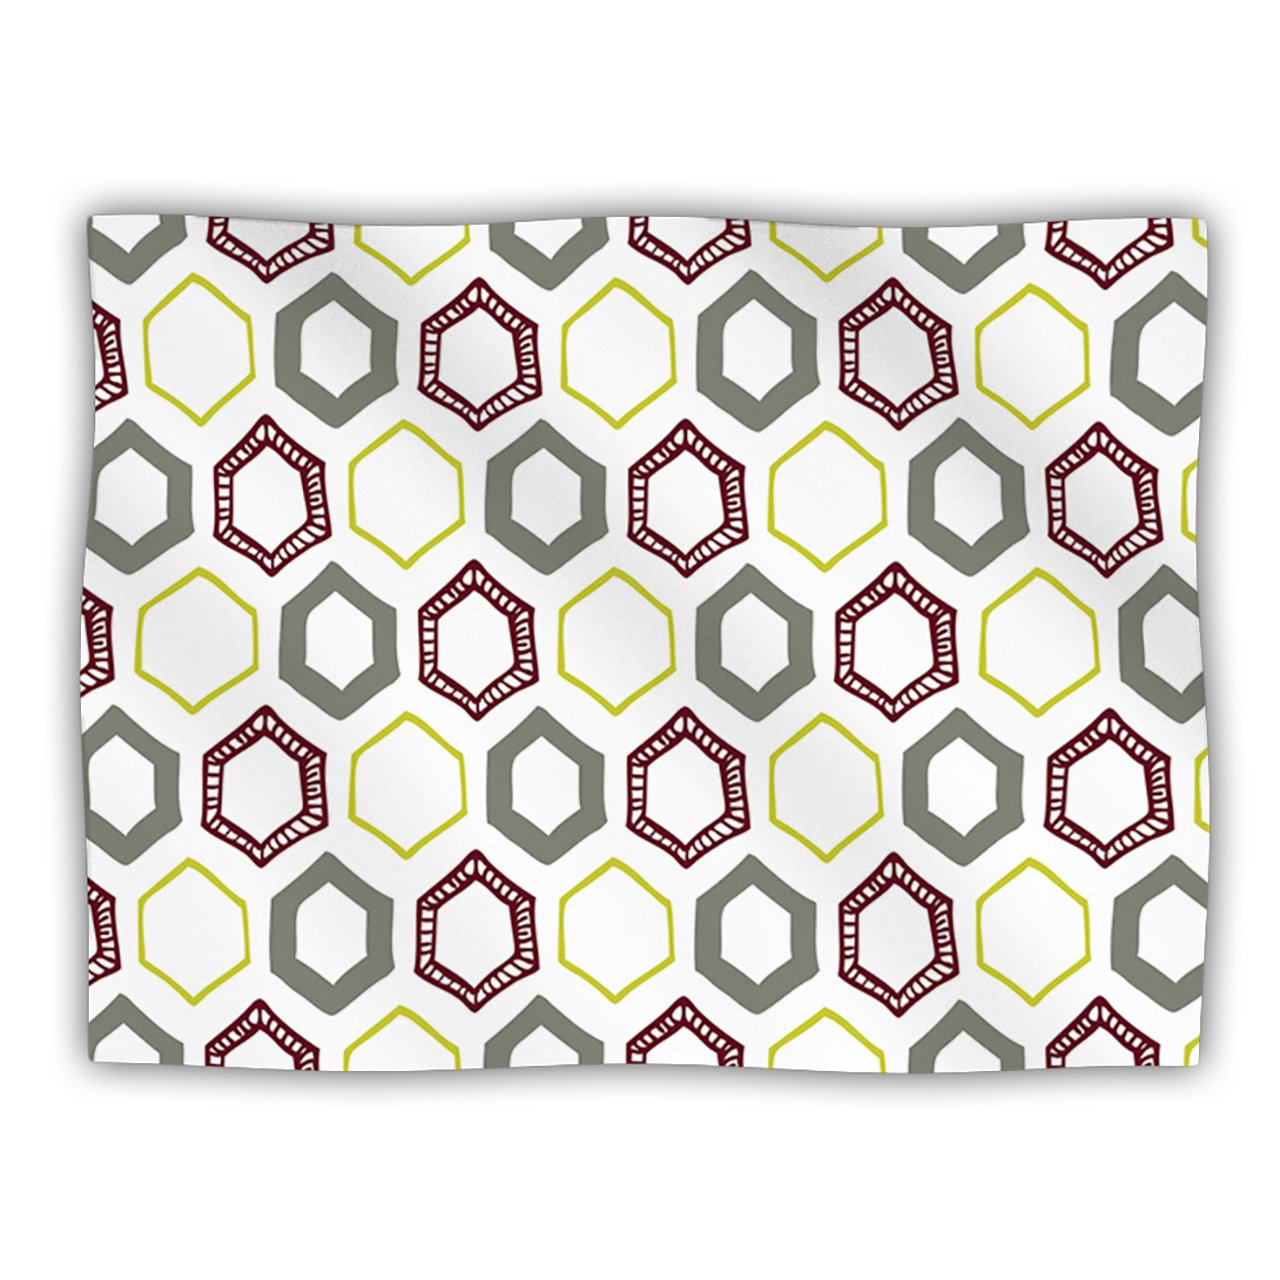 Kess InHouse Laurie Baars 'Hexy Small' Purple Geometric Dog Blanket, 40 by 30-Inch